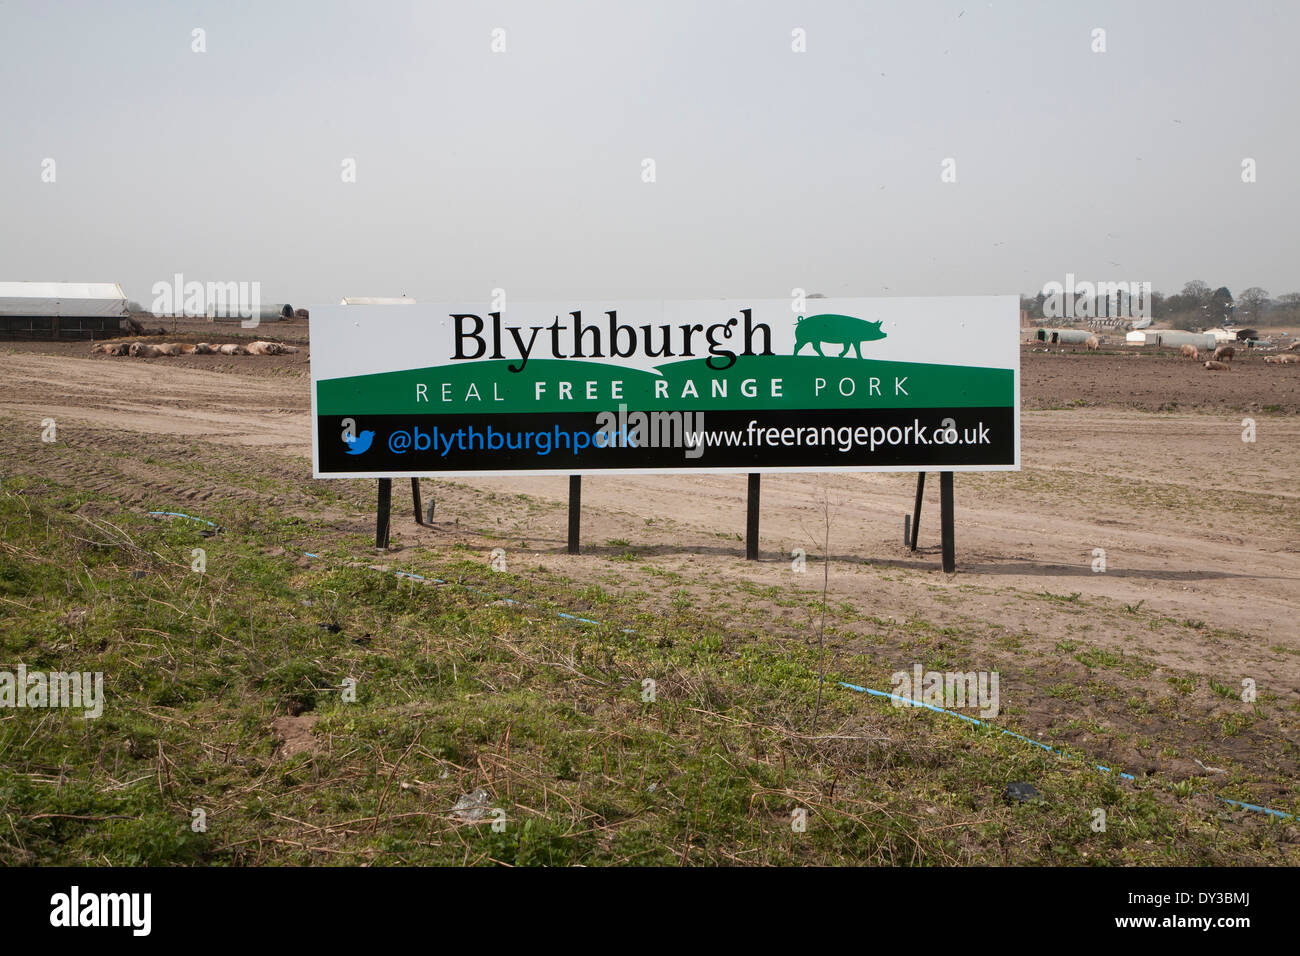 Sign in field of pigs advertising Real Free Range Pork, Blythburgh, Suffolk, England - Stock Image